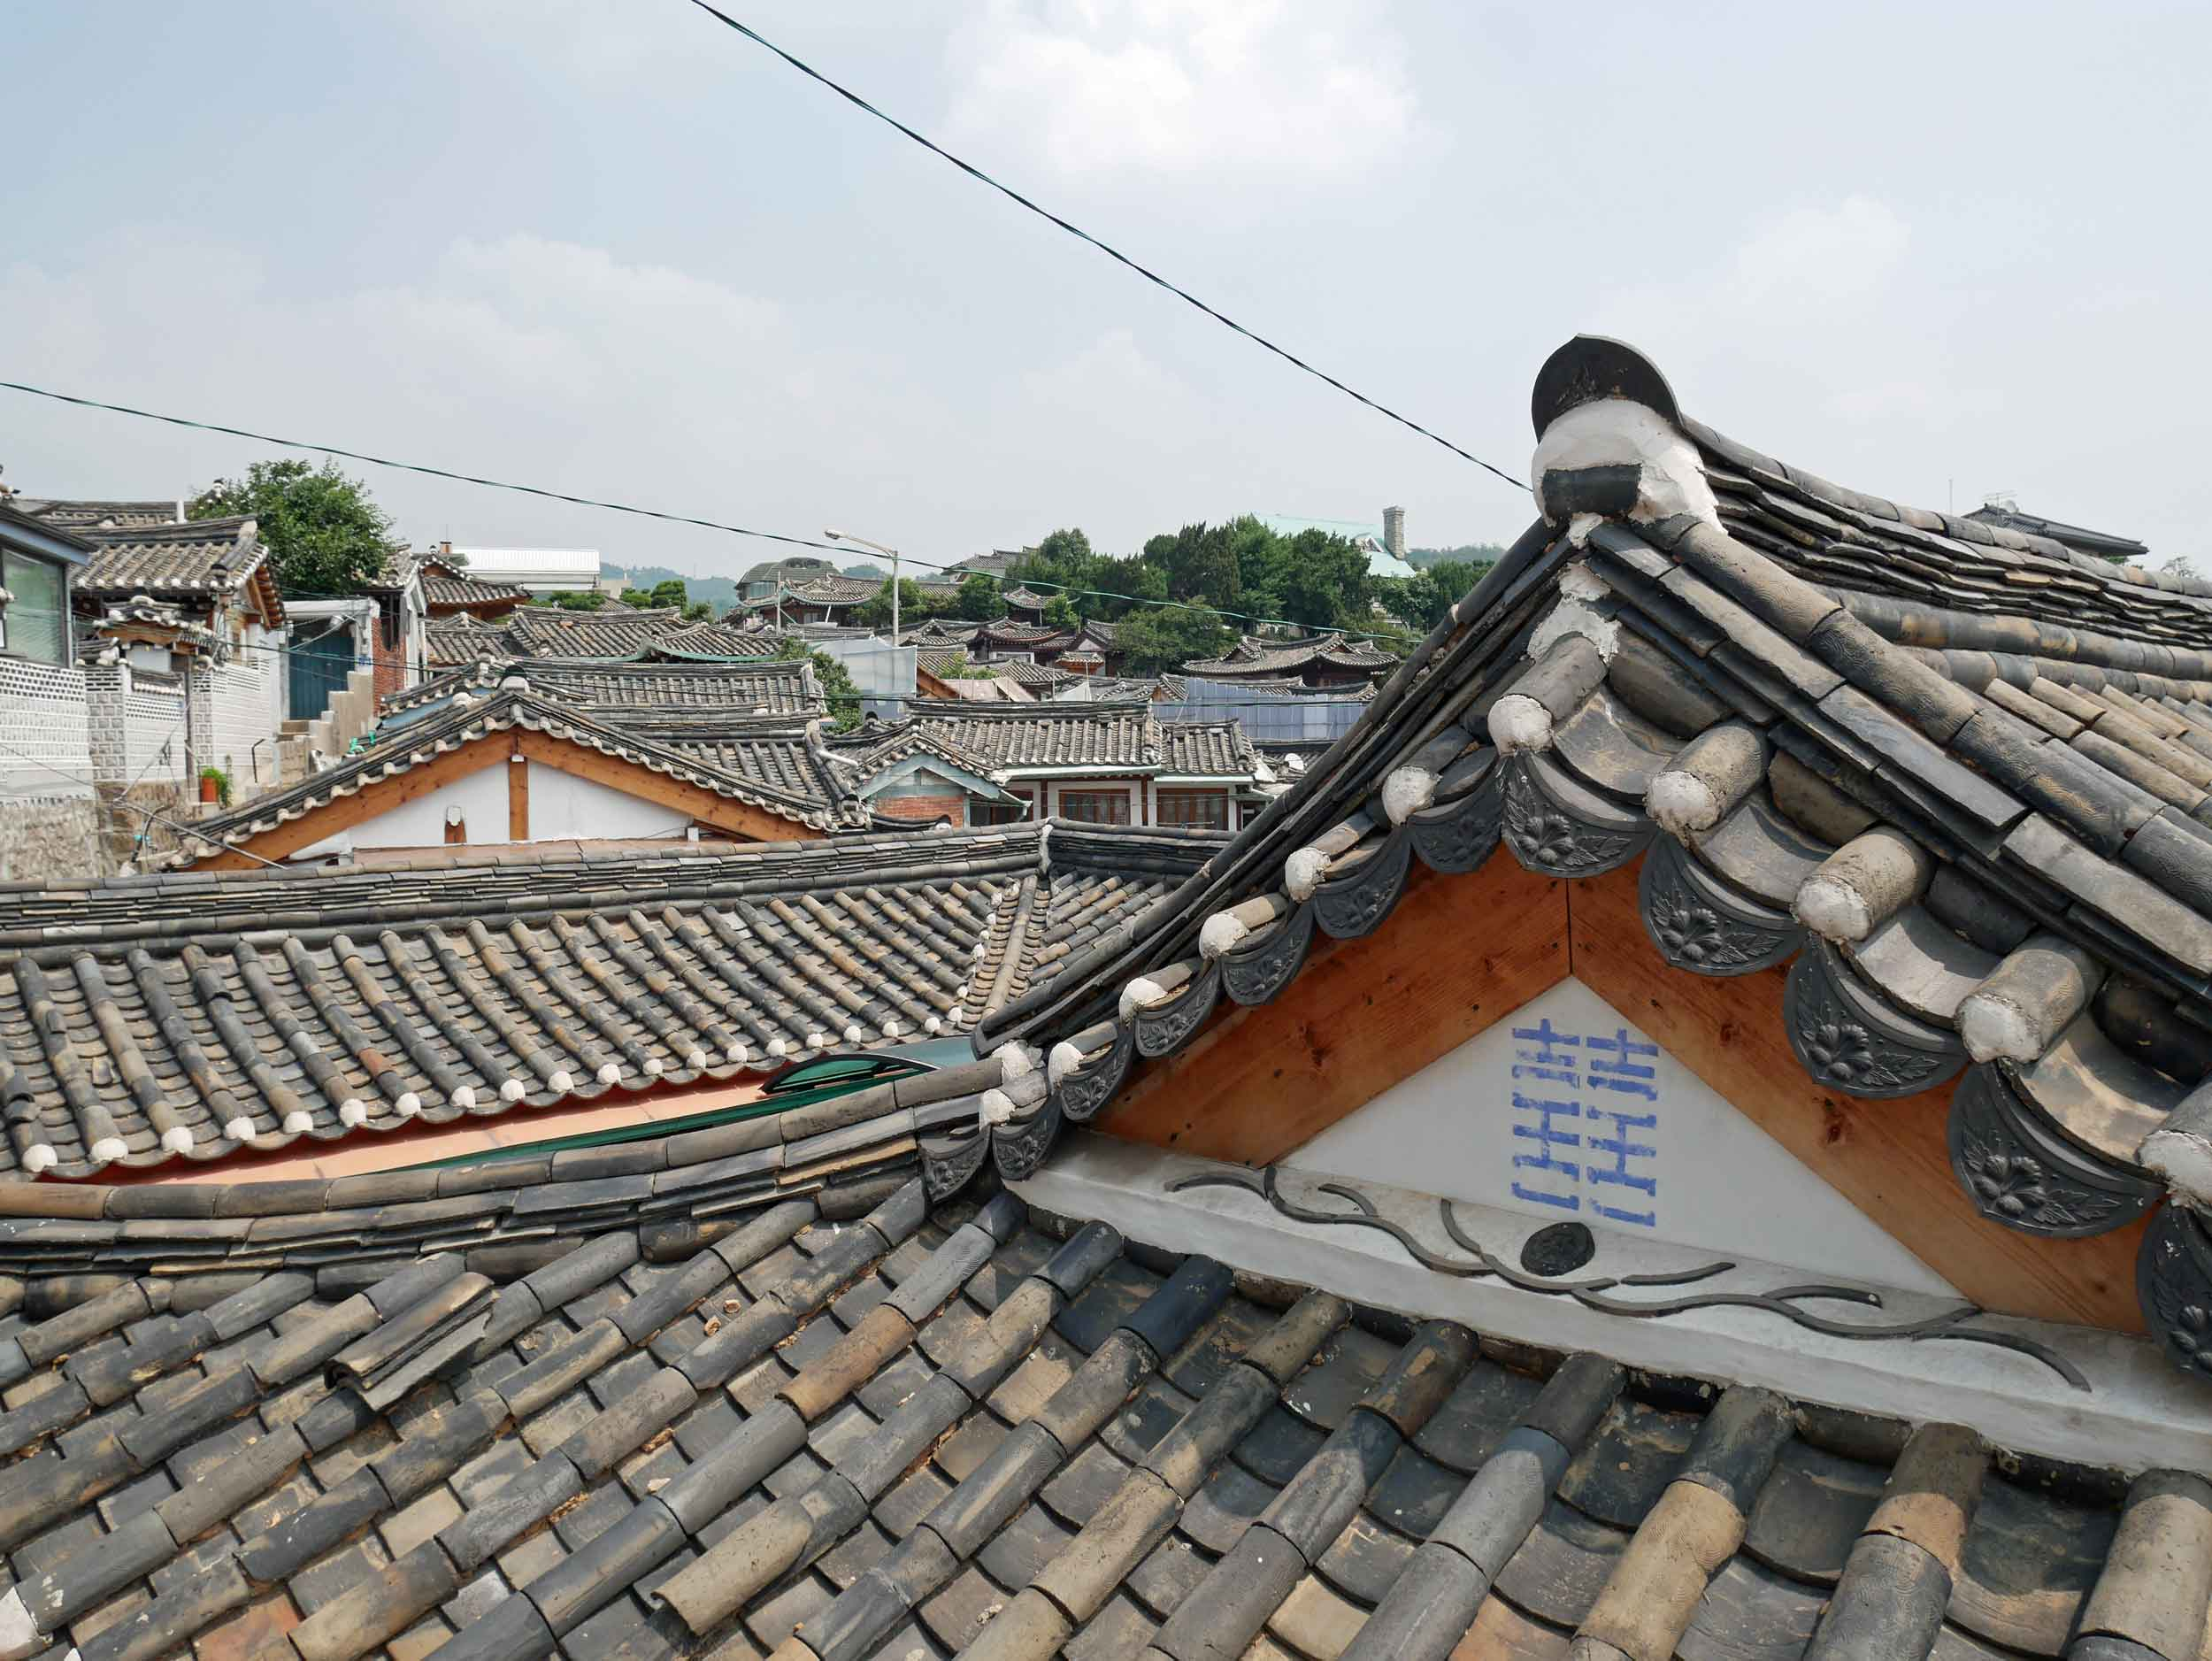 The village gently climbs the hills of Seoul offering panoramic views above the crowded roofs.